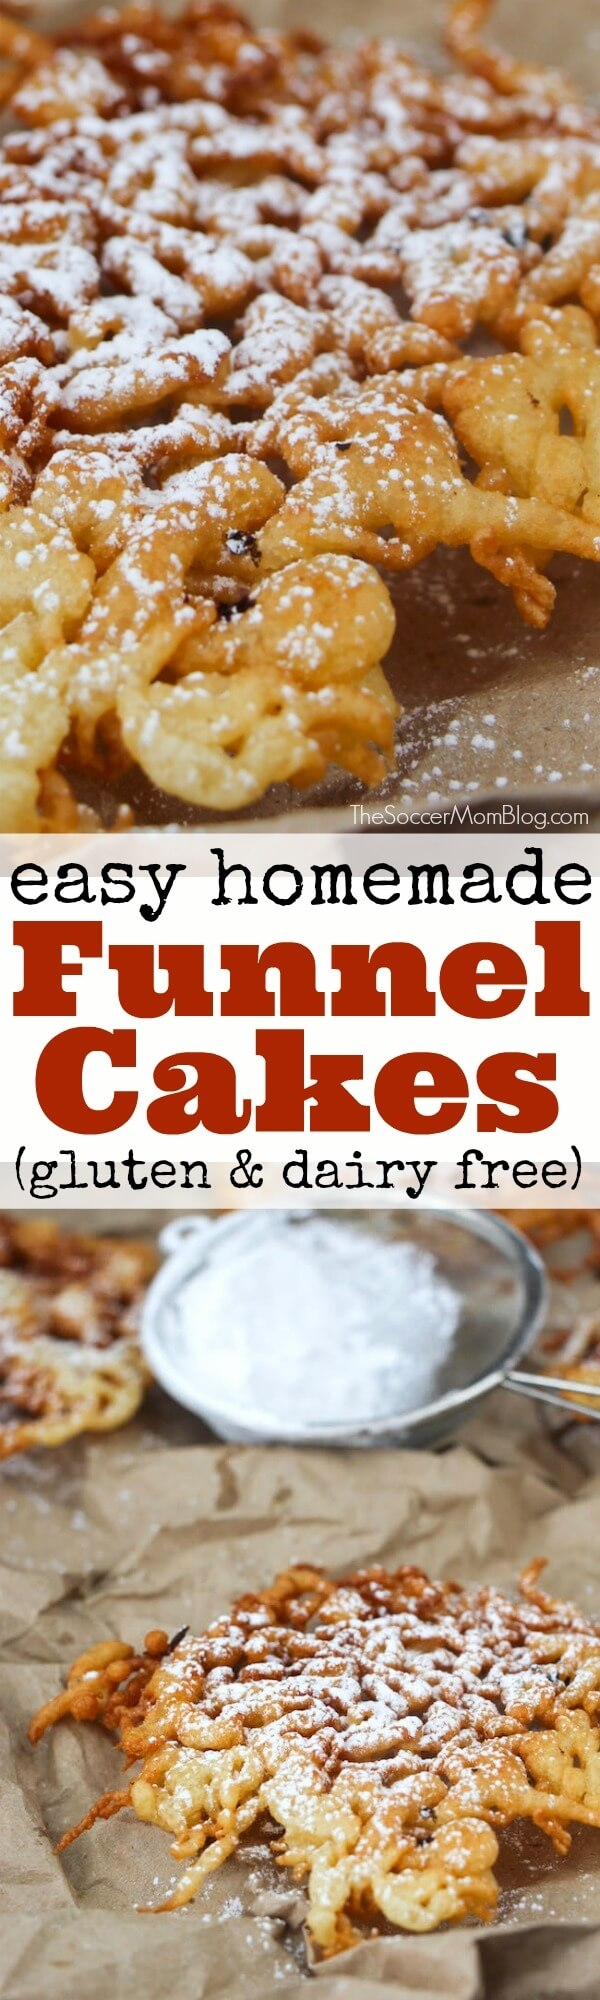 A gluten free funnel cake recipe that's sure satisfy your sweet dough cravings, without the wheat!